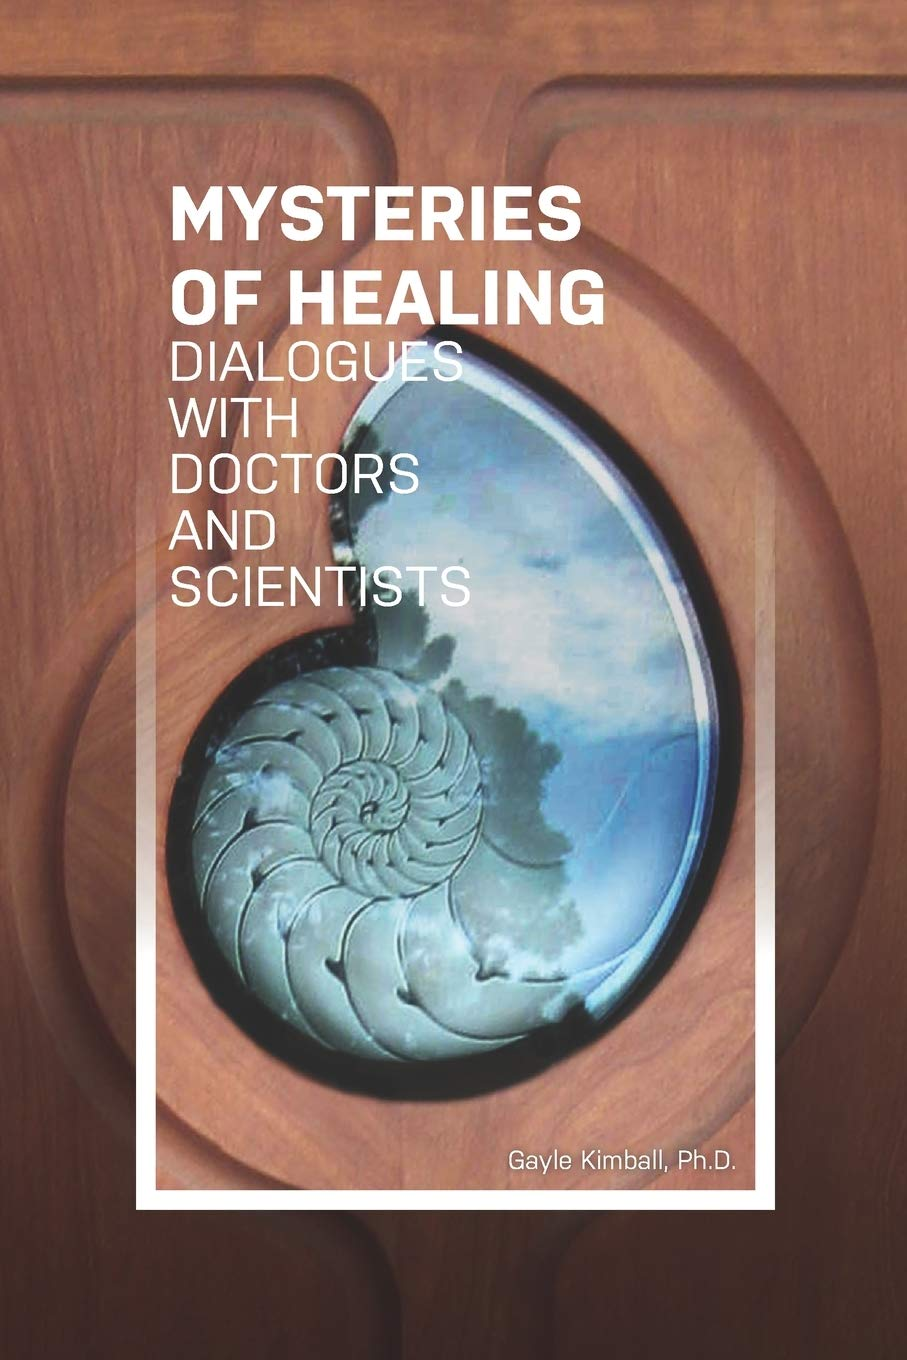 The Mysteries of Healing